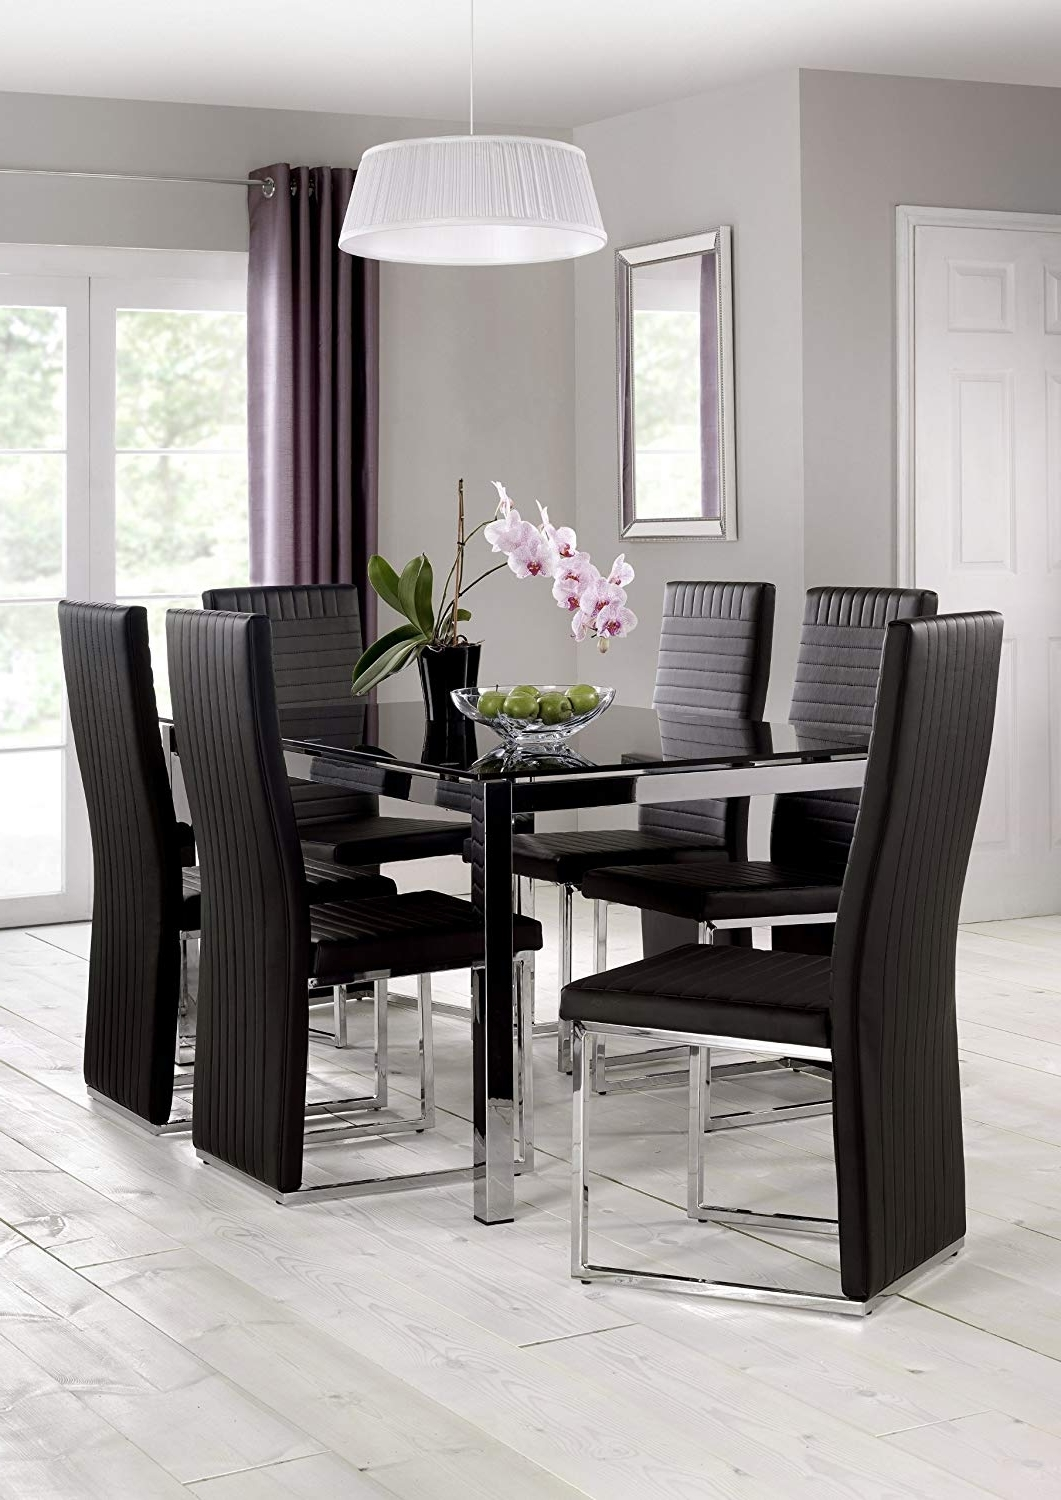 Fashionable Cheap Glass Dining Tables And 6 Chairs Inside Julian Bowen Tempo Glass Dining Table, Chrome/black: Amazon.co.uk (Gallery 3 of 25)